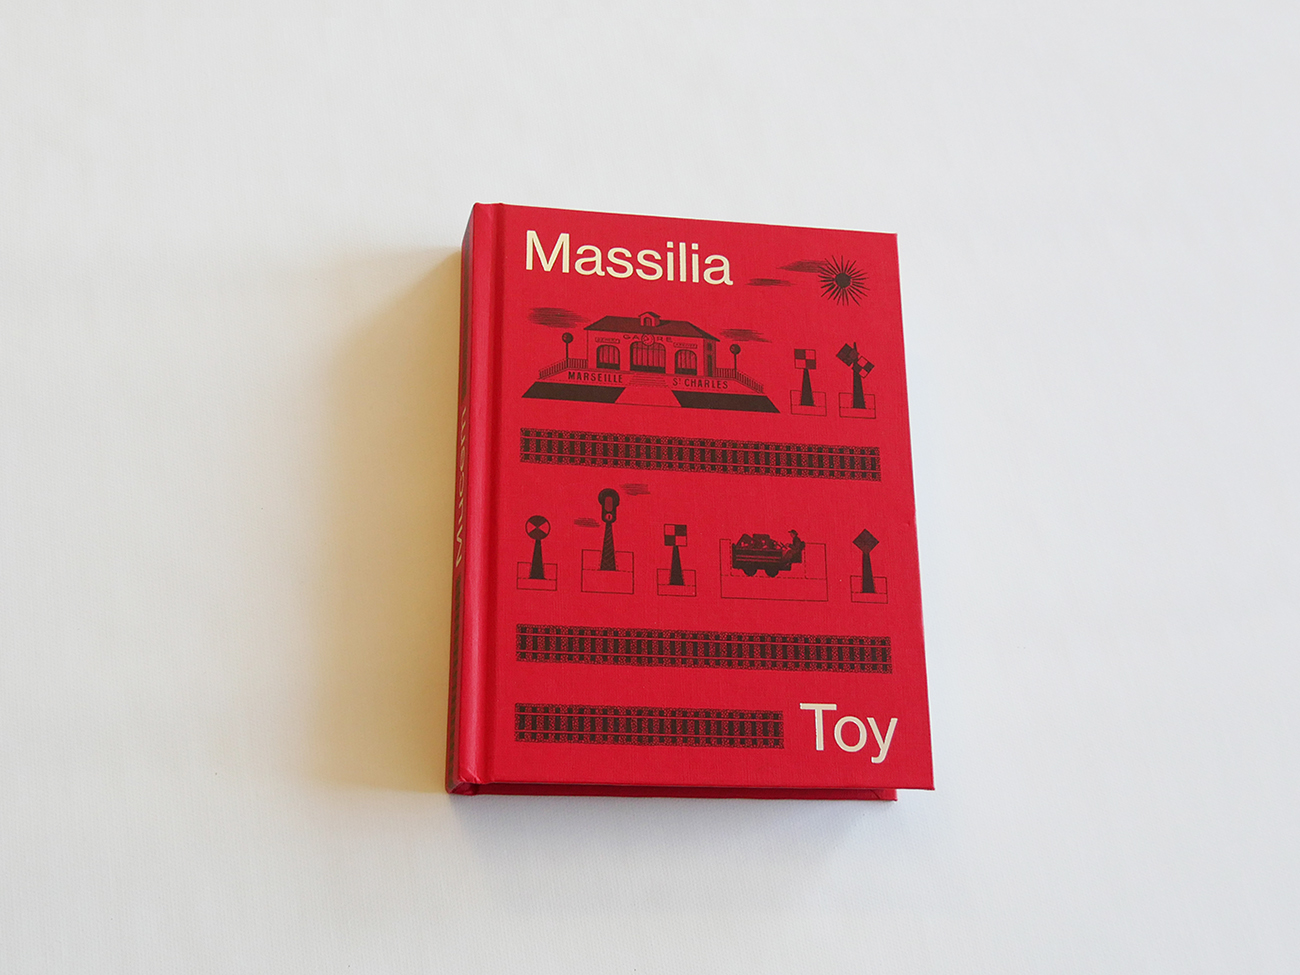 Catalogue exposition Massilia Toy, Mucem